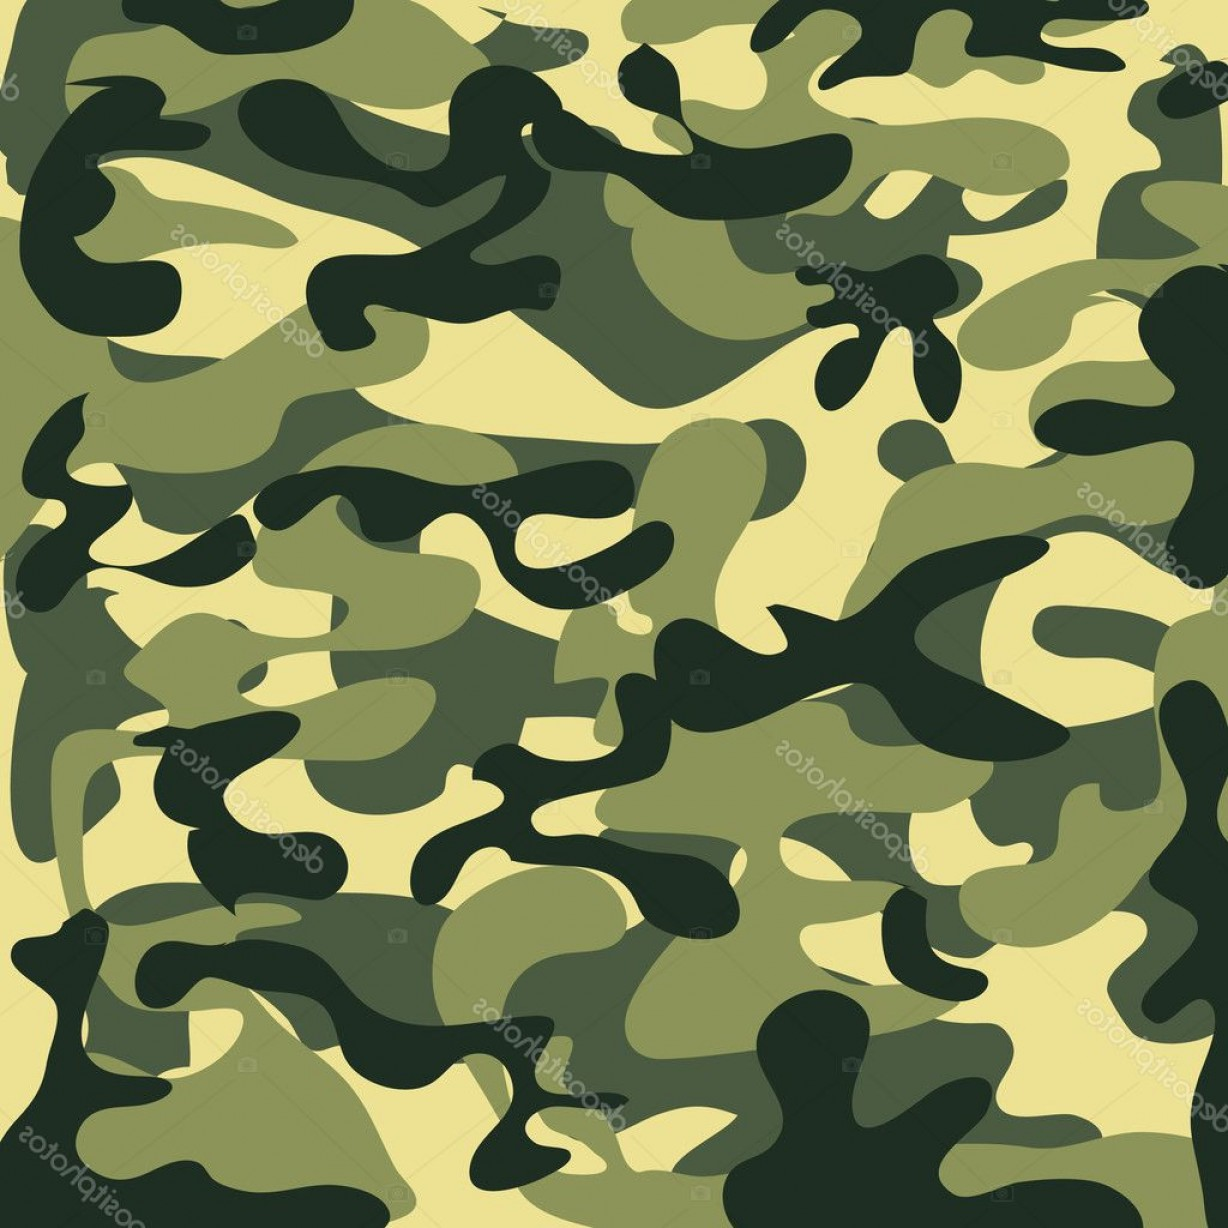 Army Camouflage Pattern Vector: Stock Illustration Classic Seamless Military Camouflage Pattern